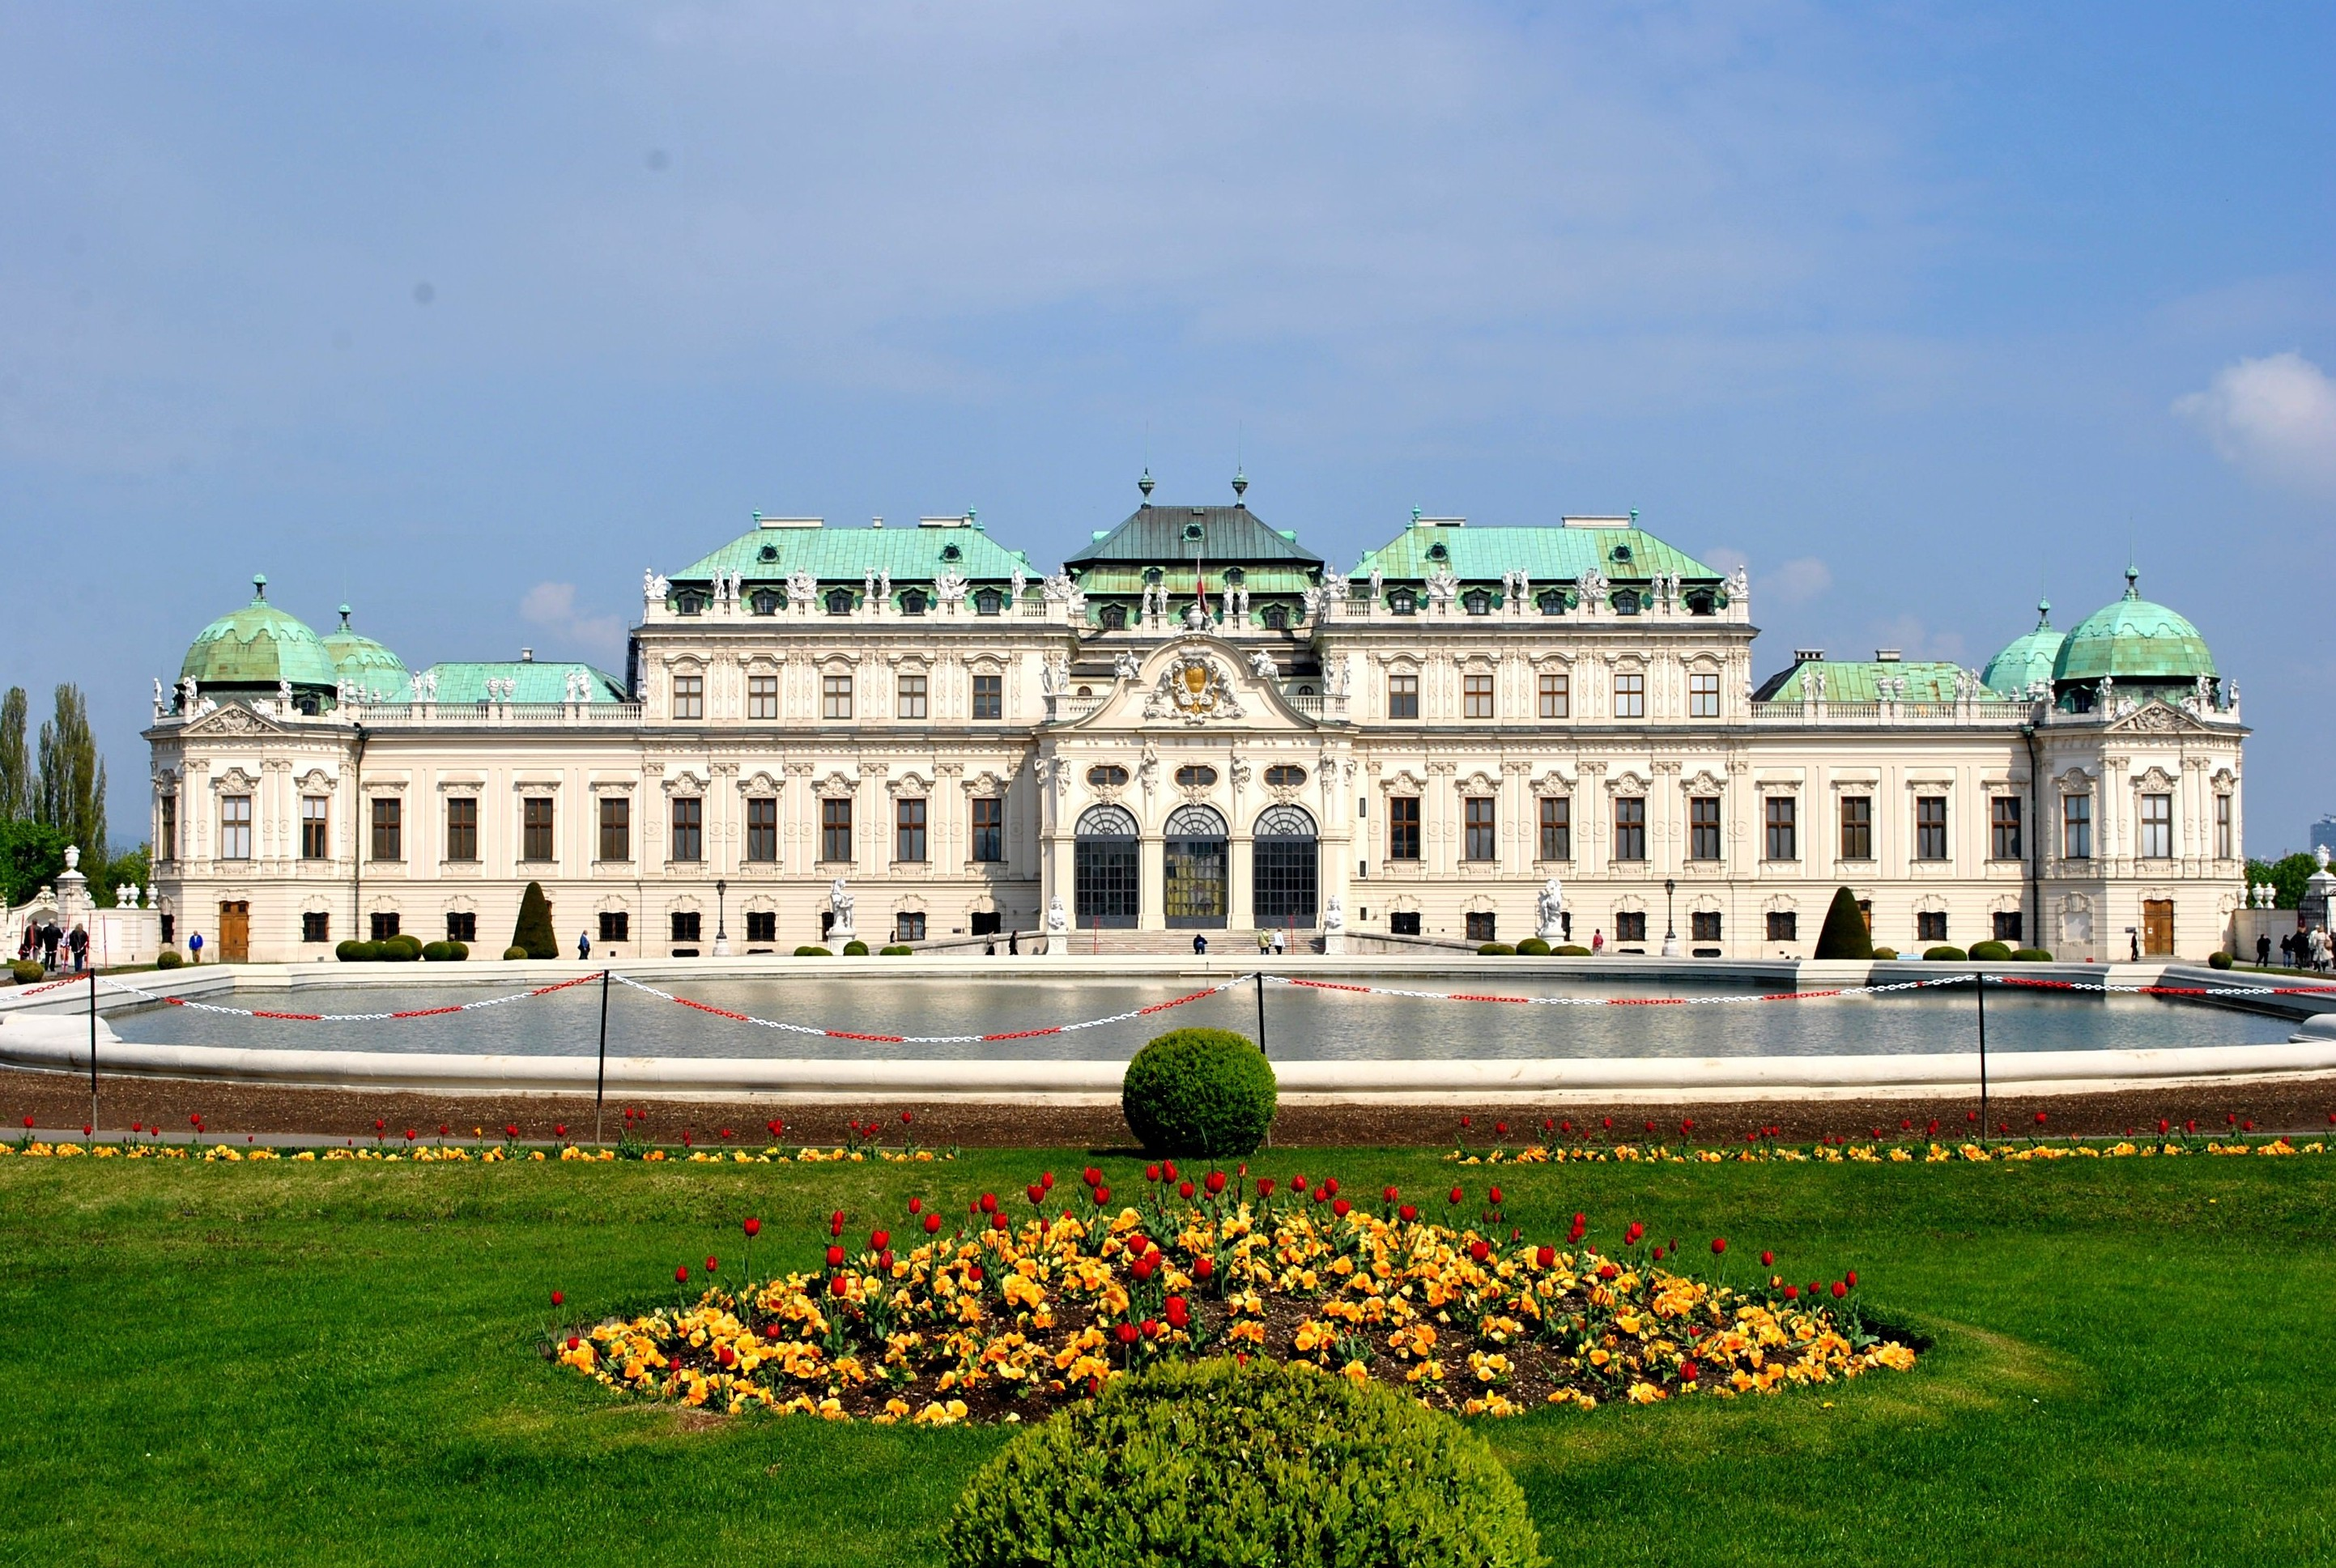 Vienna Austria  city pictures gallery : Description 5 of 15 Belvedere Palace, Vienna AUSTRIA